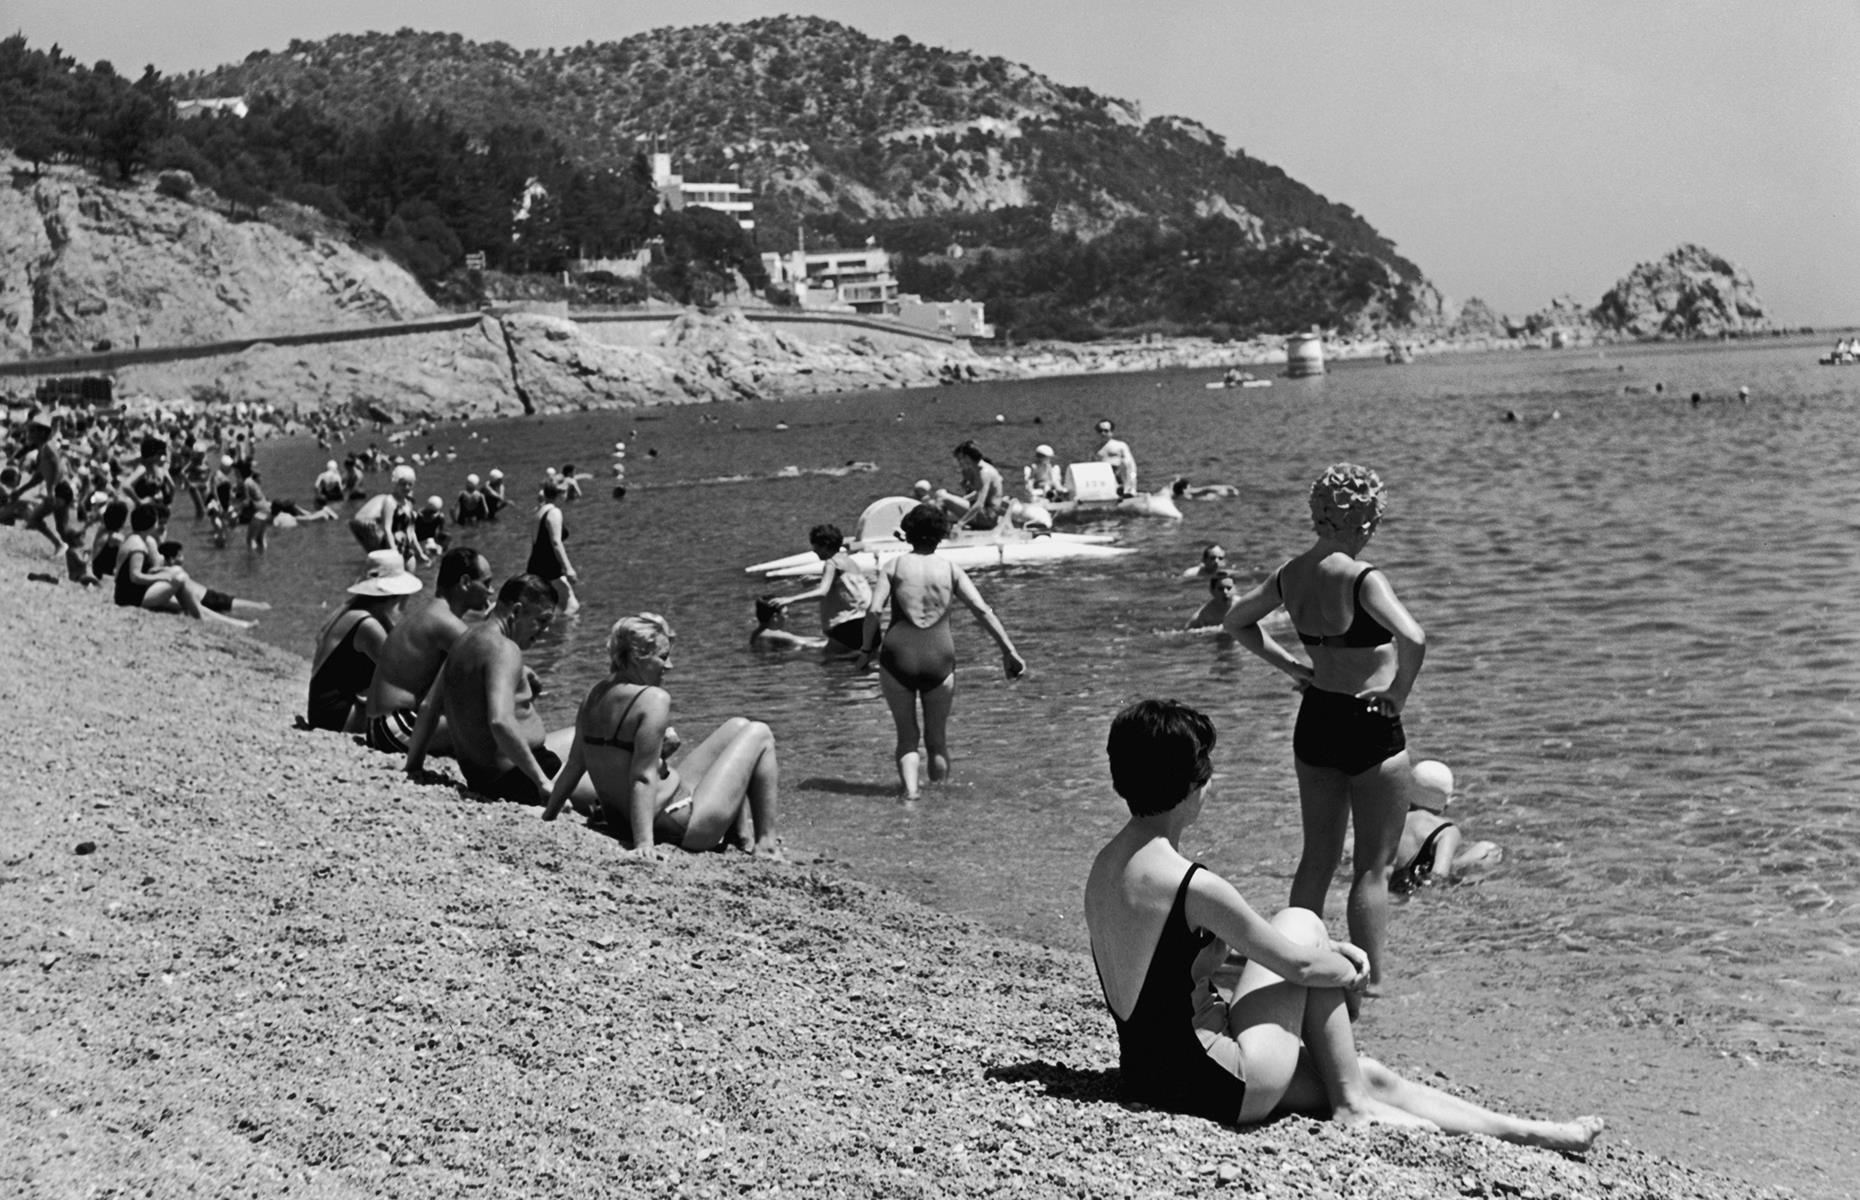 Slide 16 of 38: By the 1960s, Spanish seaside resorts such as Benidorm in Costa Blanca buzzed with people, attracting tourists from Britain and beyond. Package holidays grew in popularity during this decade too. In this Sixties snap, holidaymakers bask on a beach in Tossa de Mar, Costa Brava in northeastern Spain.